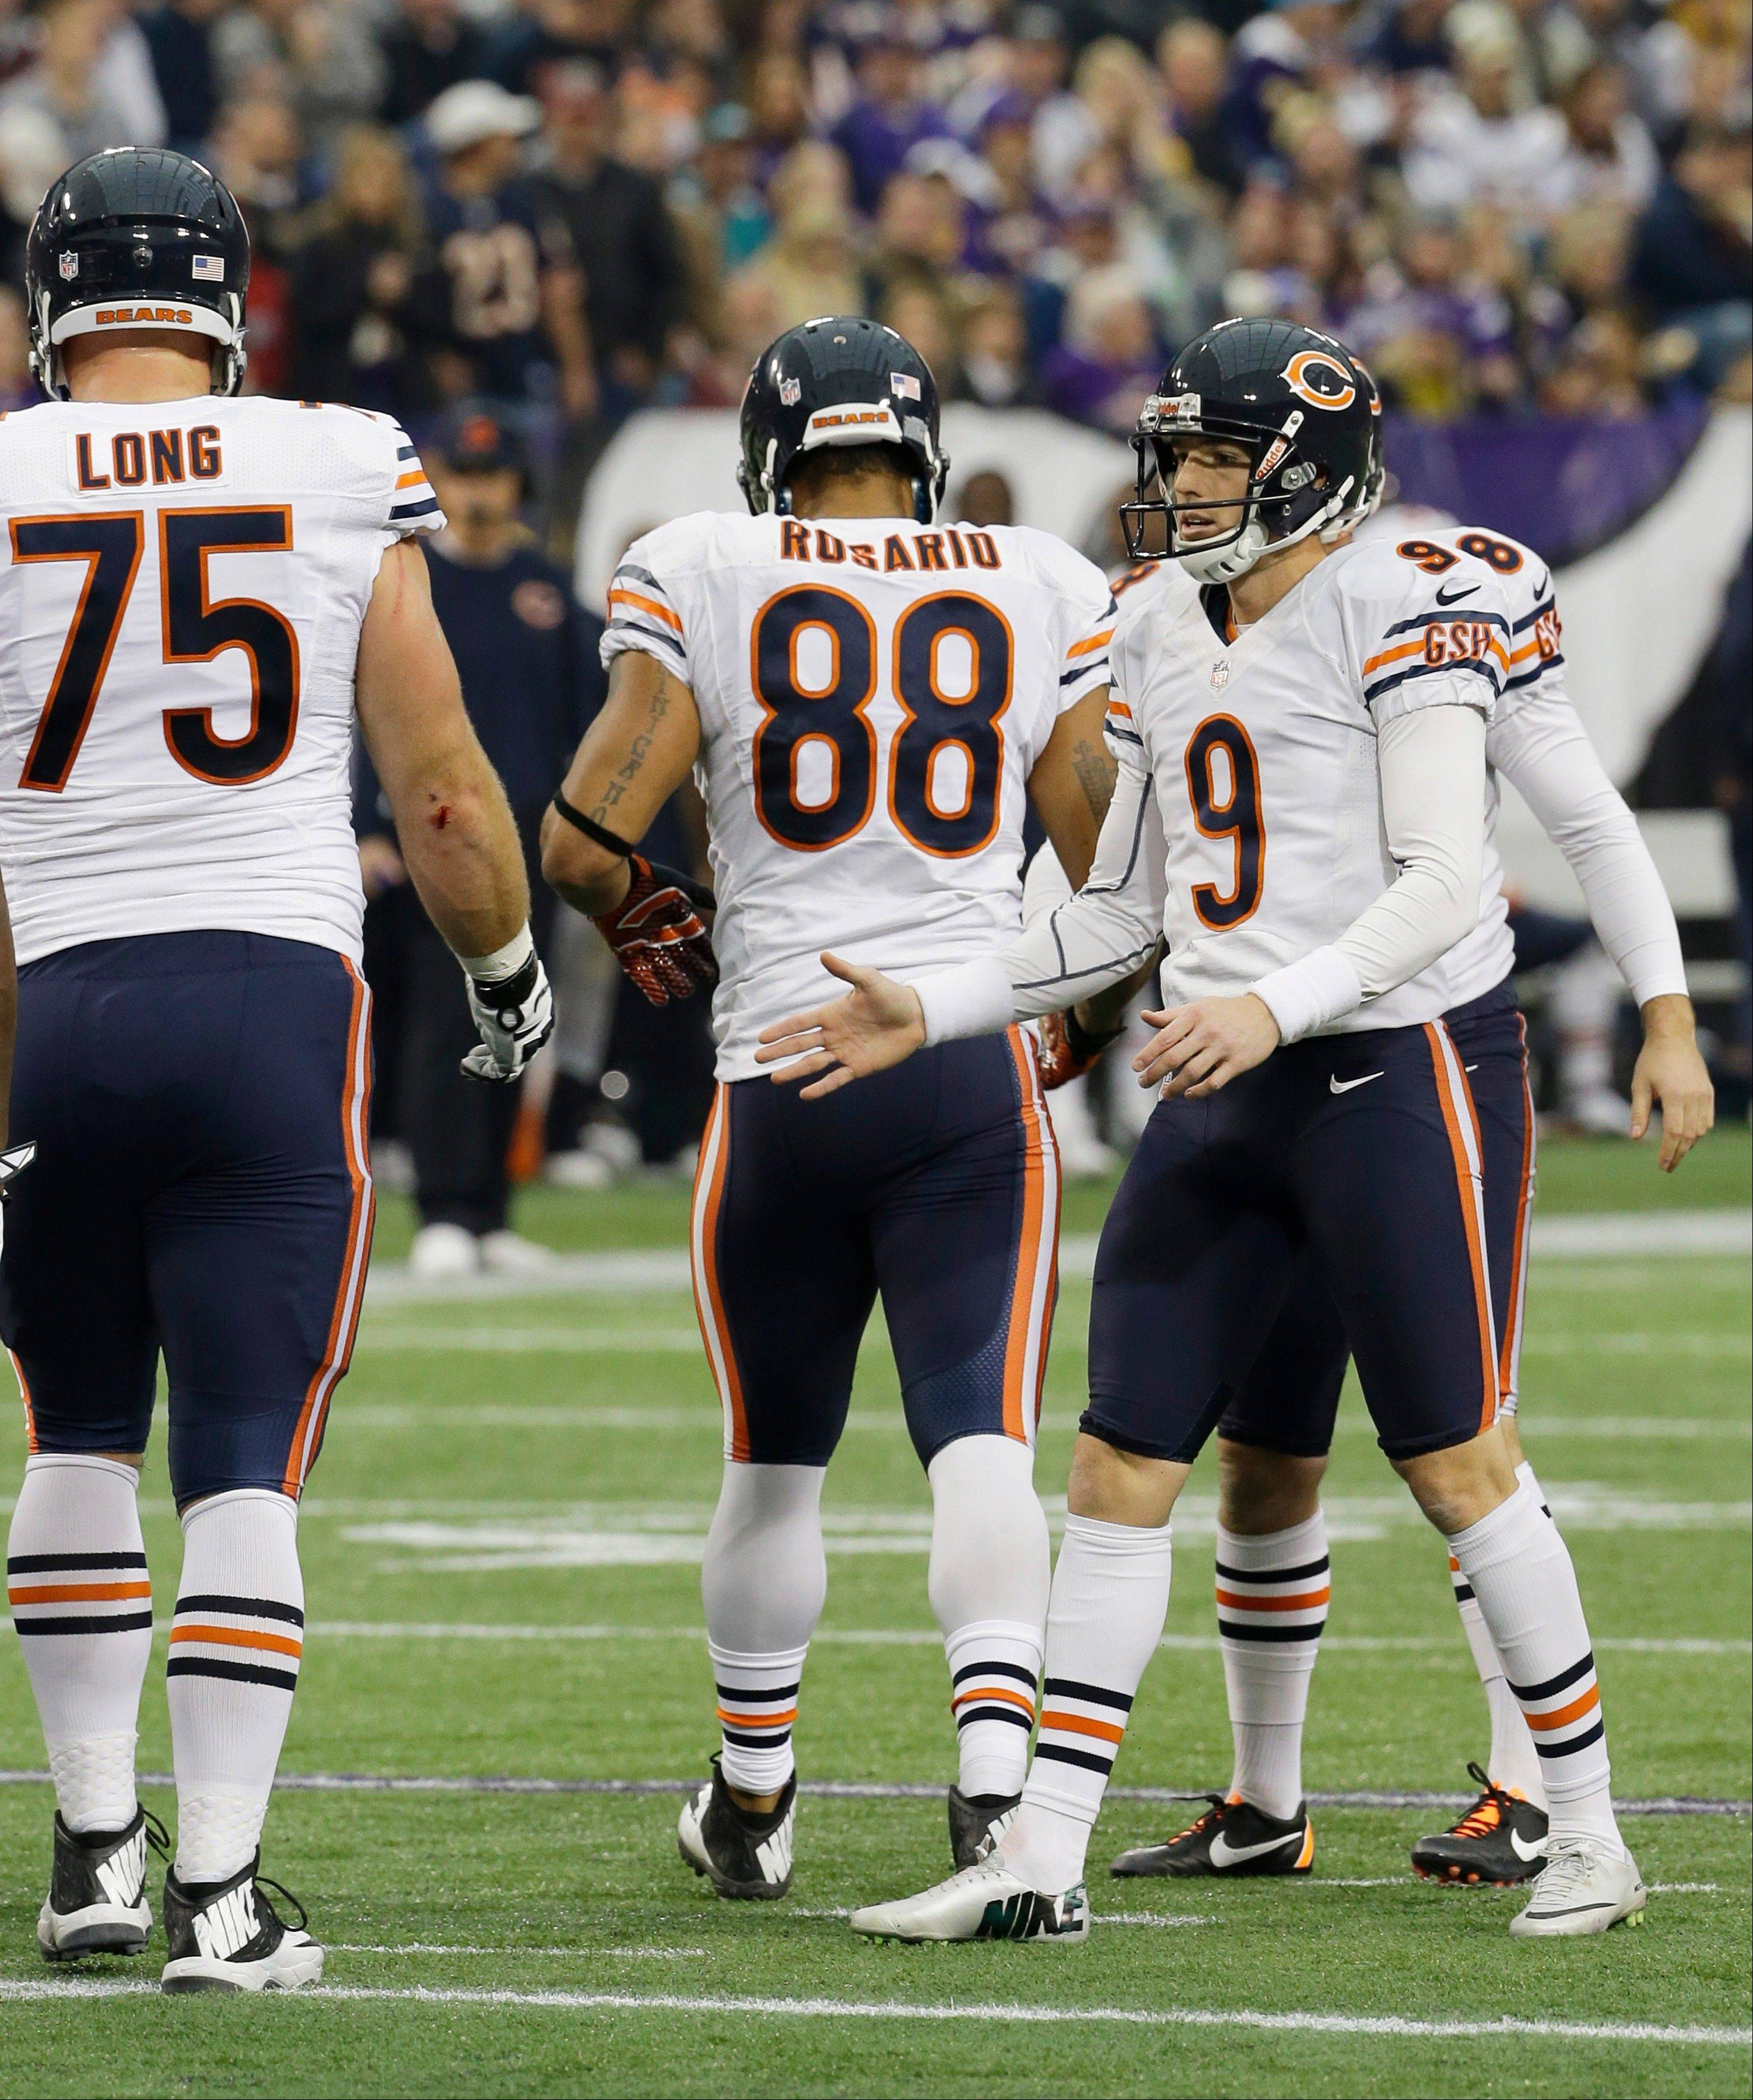 Chicago Bears kicker Robbie Gould (9) celebrates with teammates after kicking a 30-yard field goal during the first half